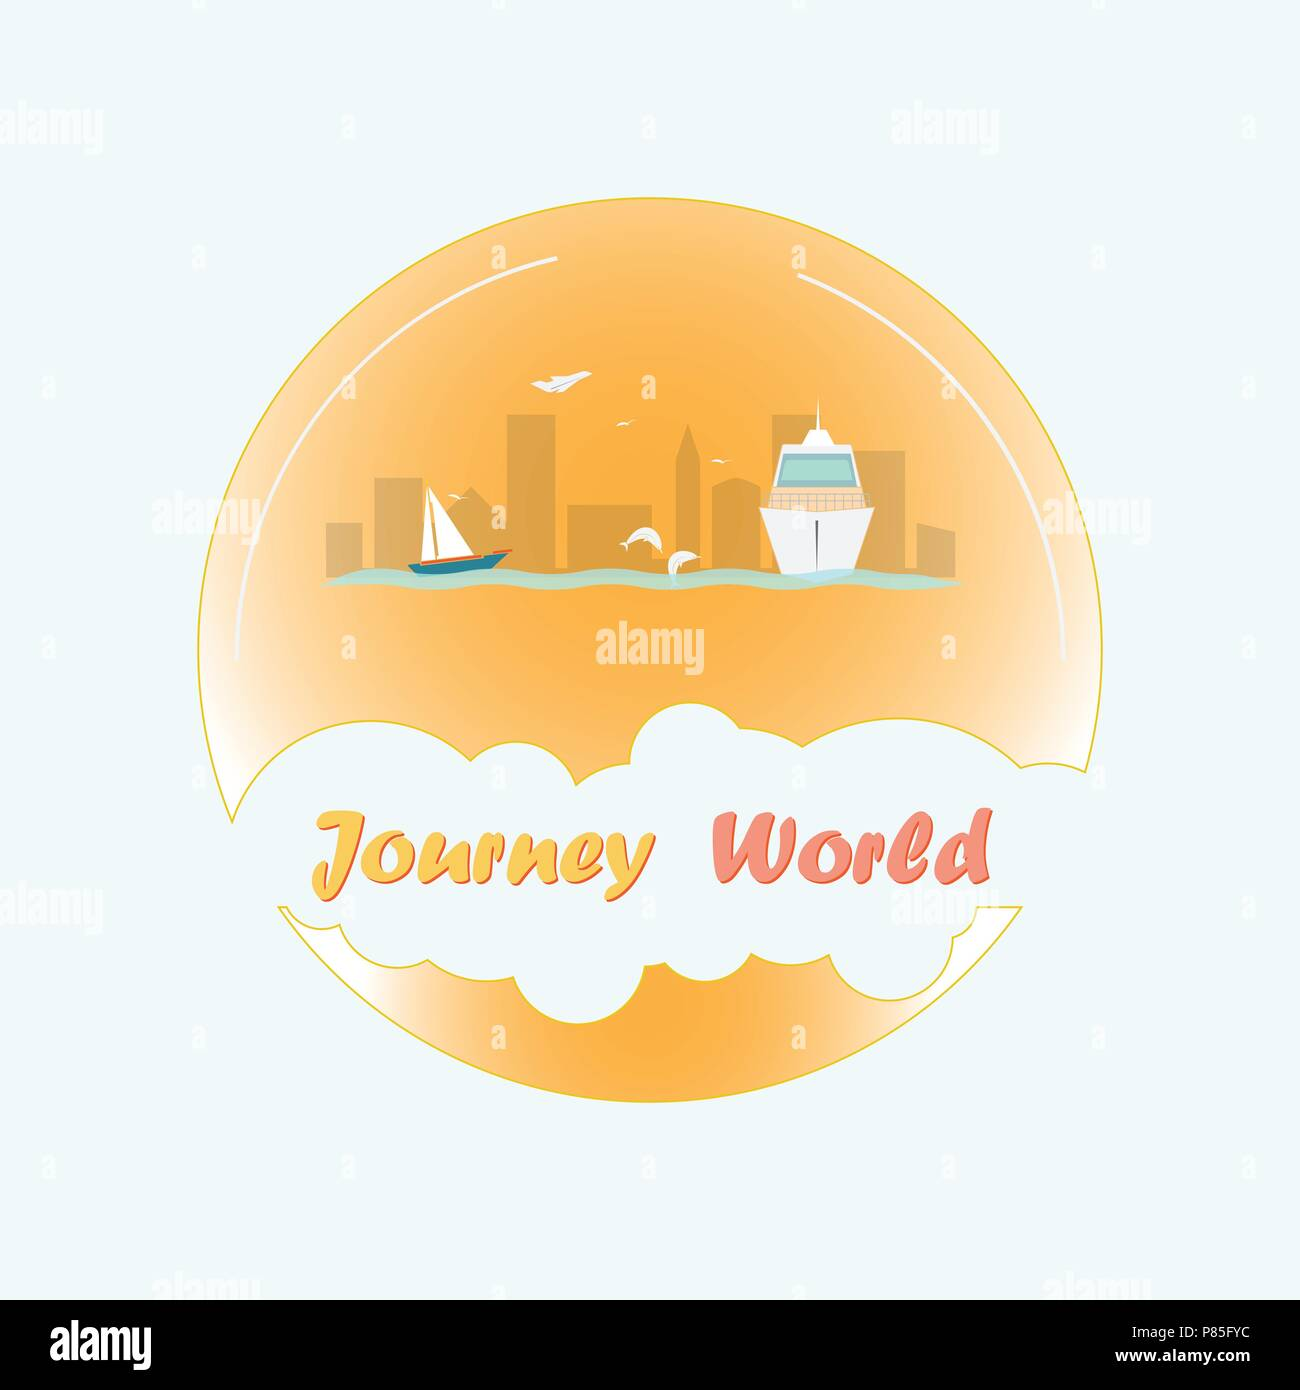 Tours around the world - Stock Vector